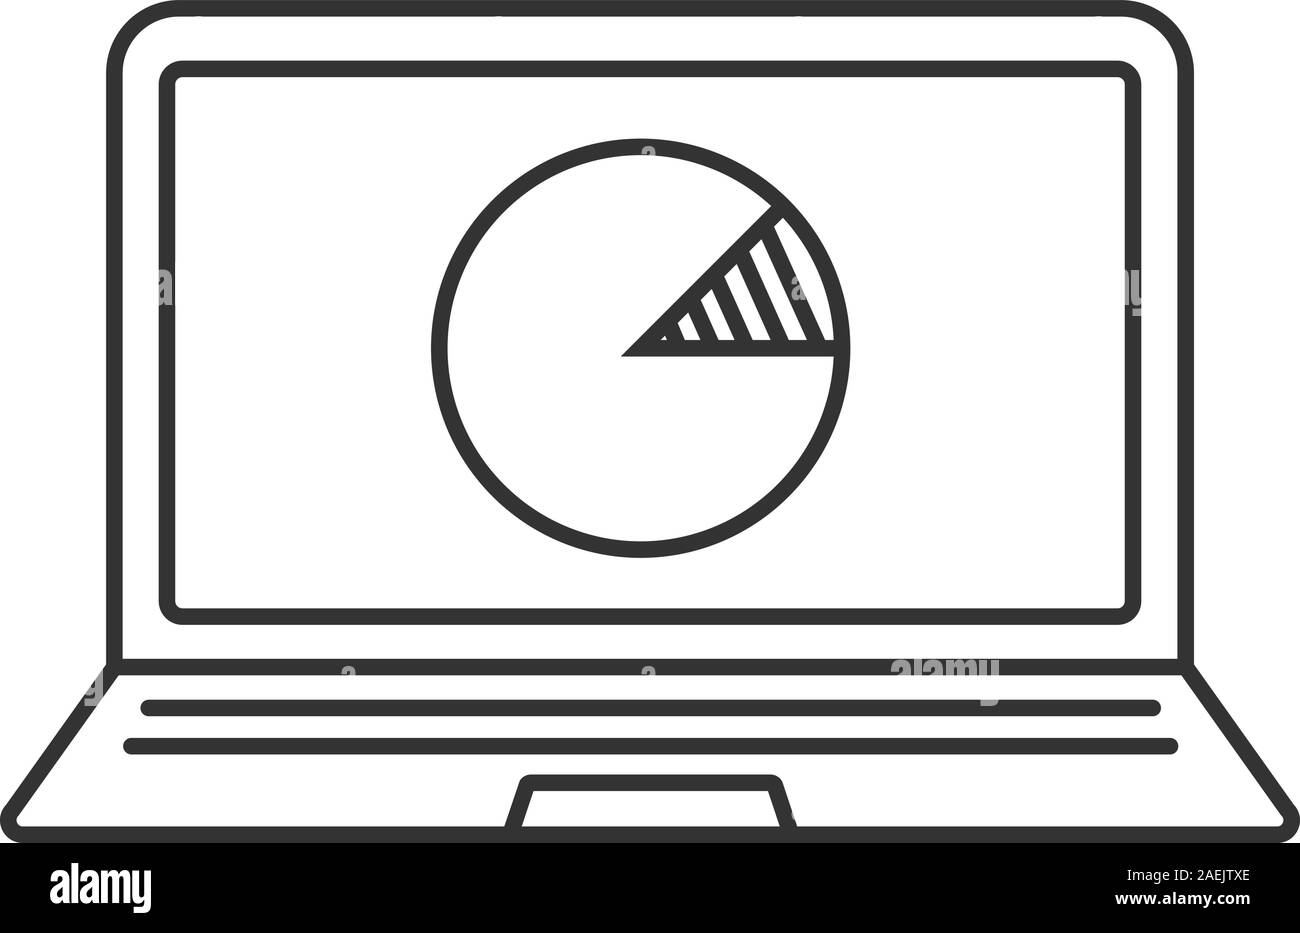 laptop statistics linear icon. thin line illustration. laptop with diagram  contour symbol. vector isolated outline drawing stock vector image & art -  alamy  alamy